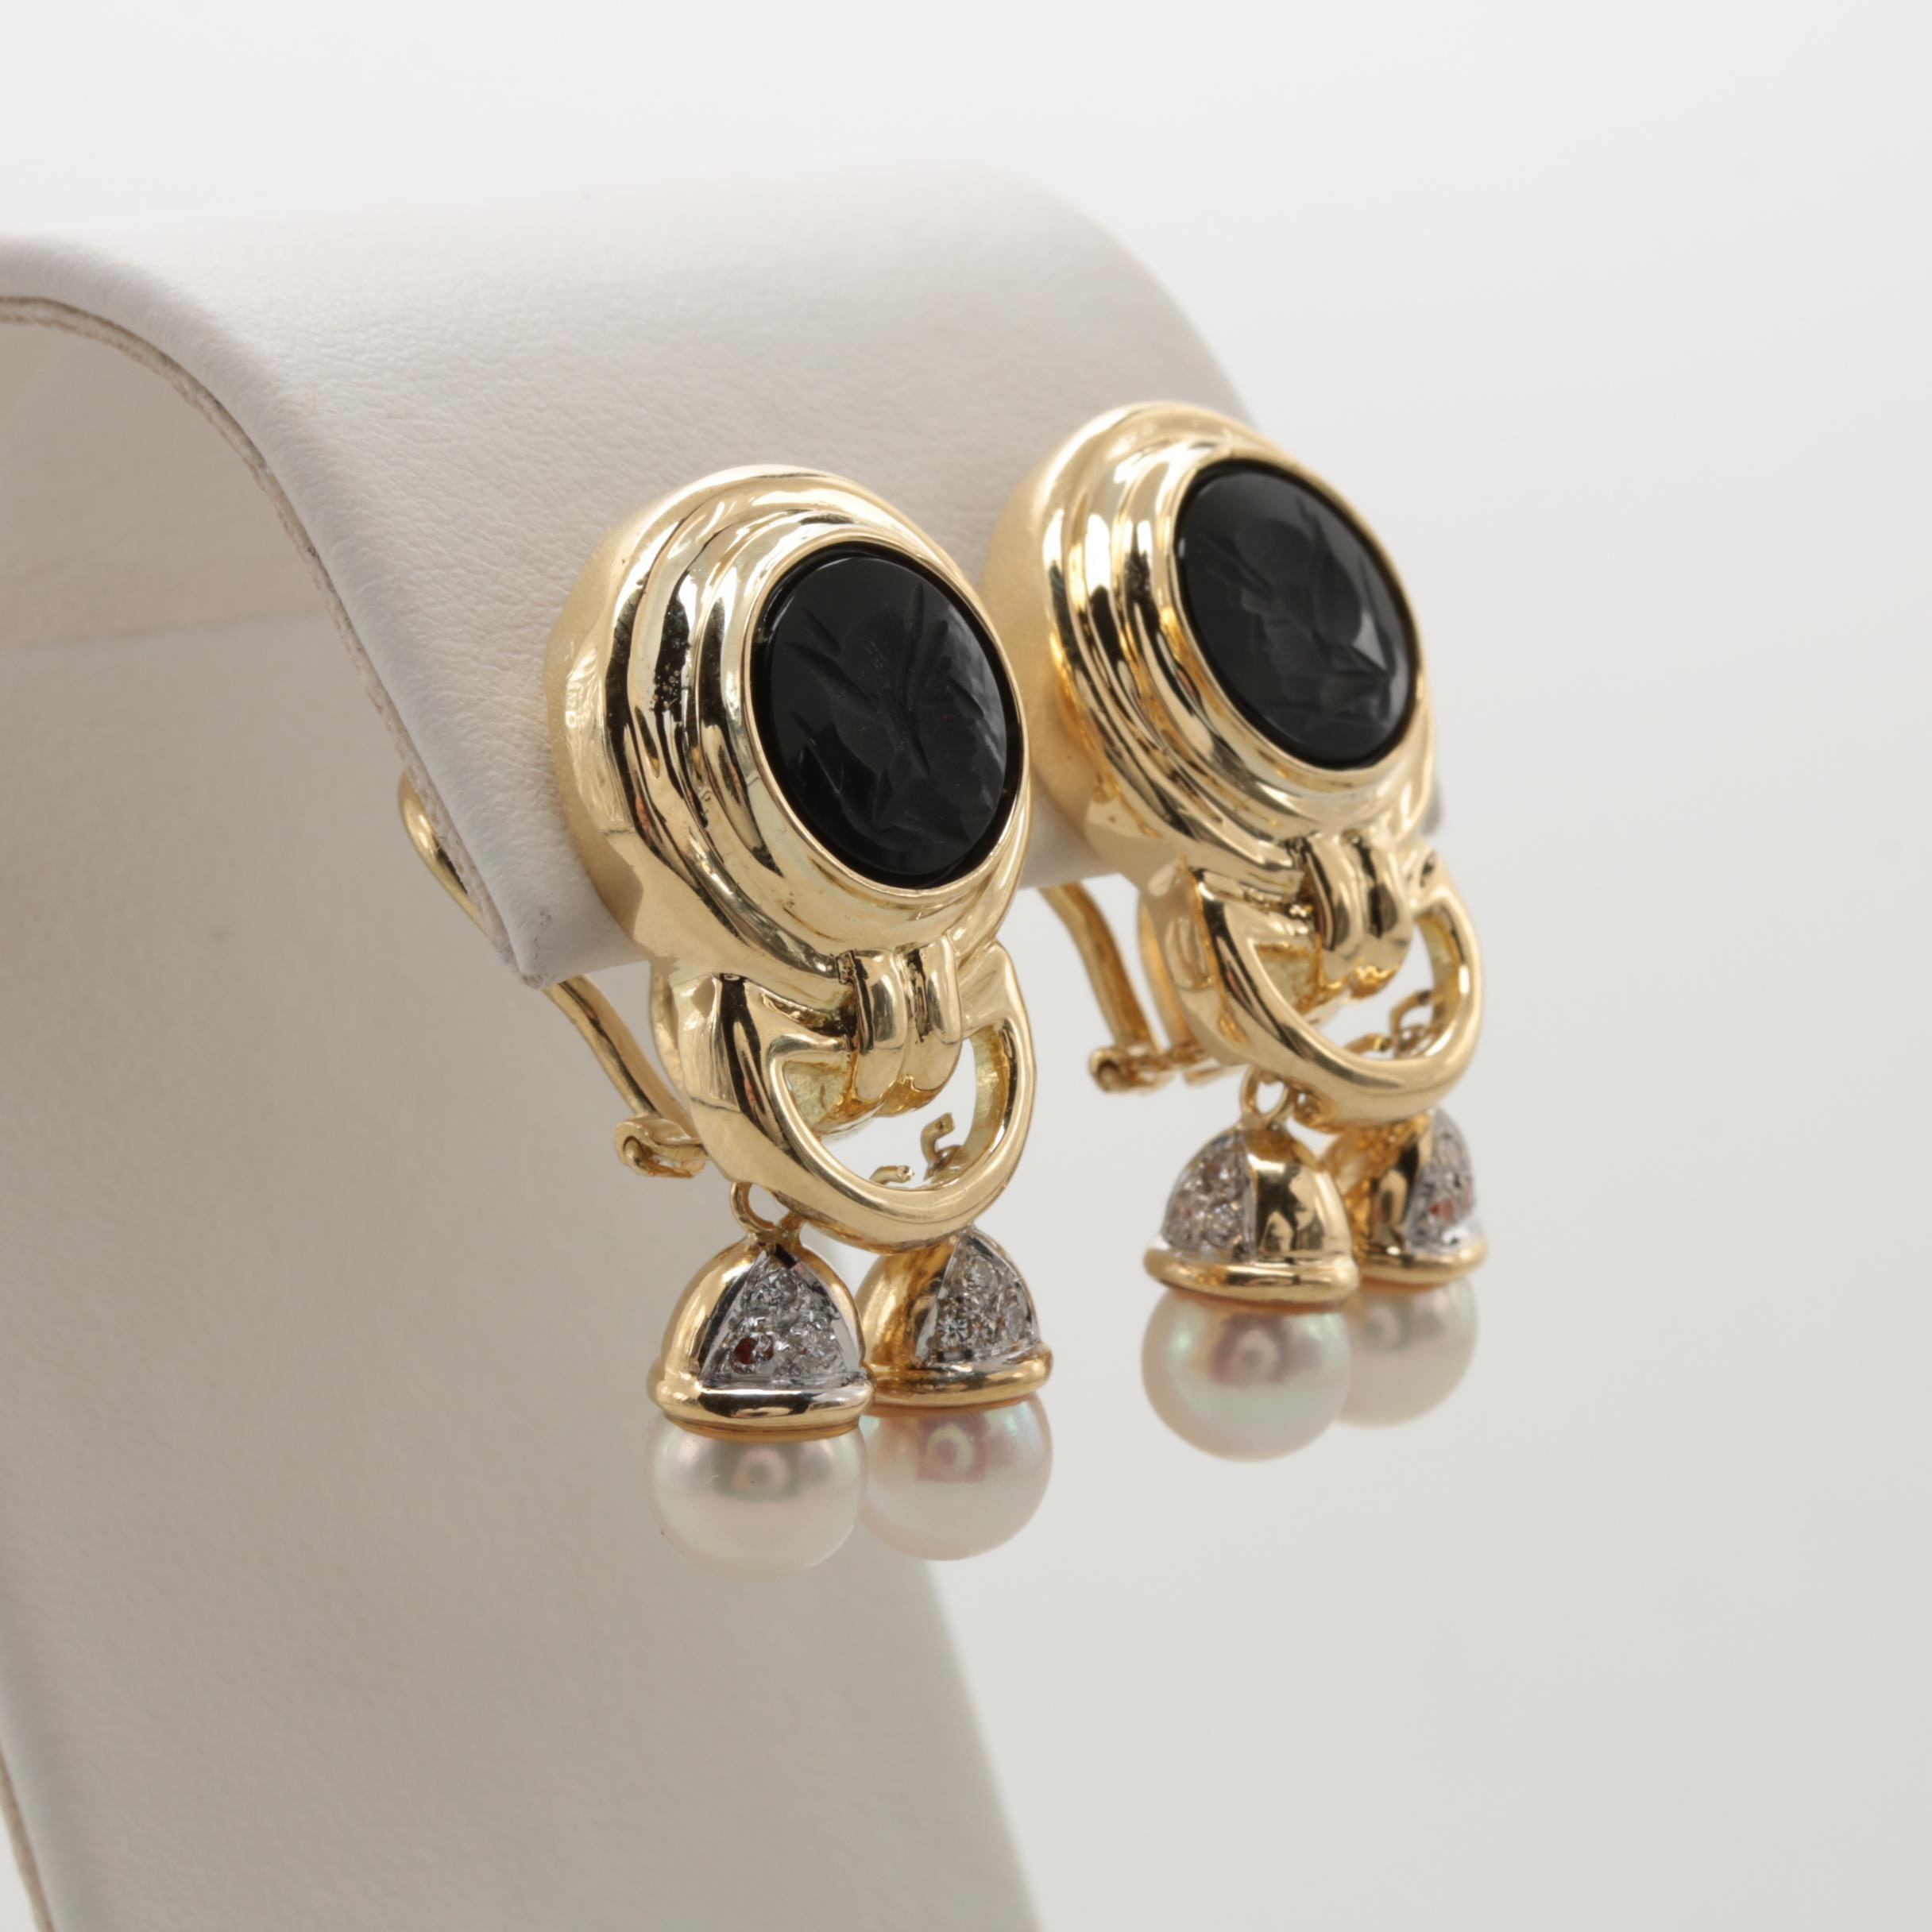 14K Yellow Gold Cultured Pearl, Diamond and Black Onyx Intaglio Earrings